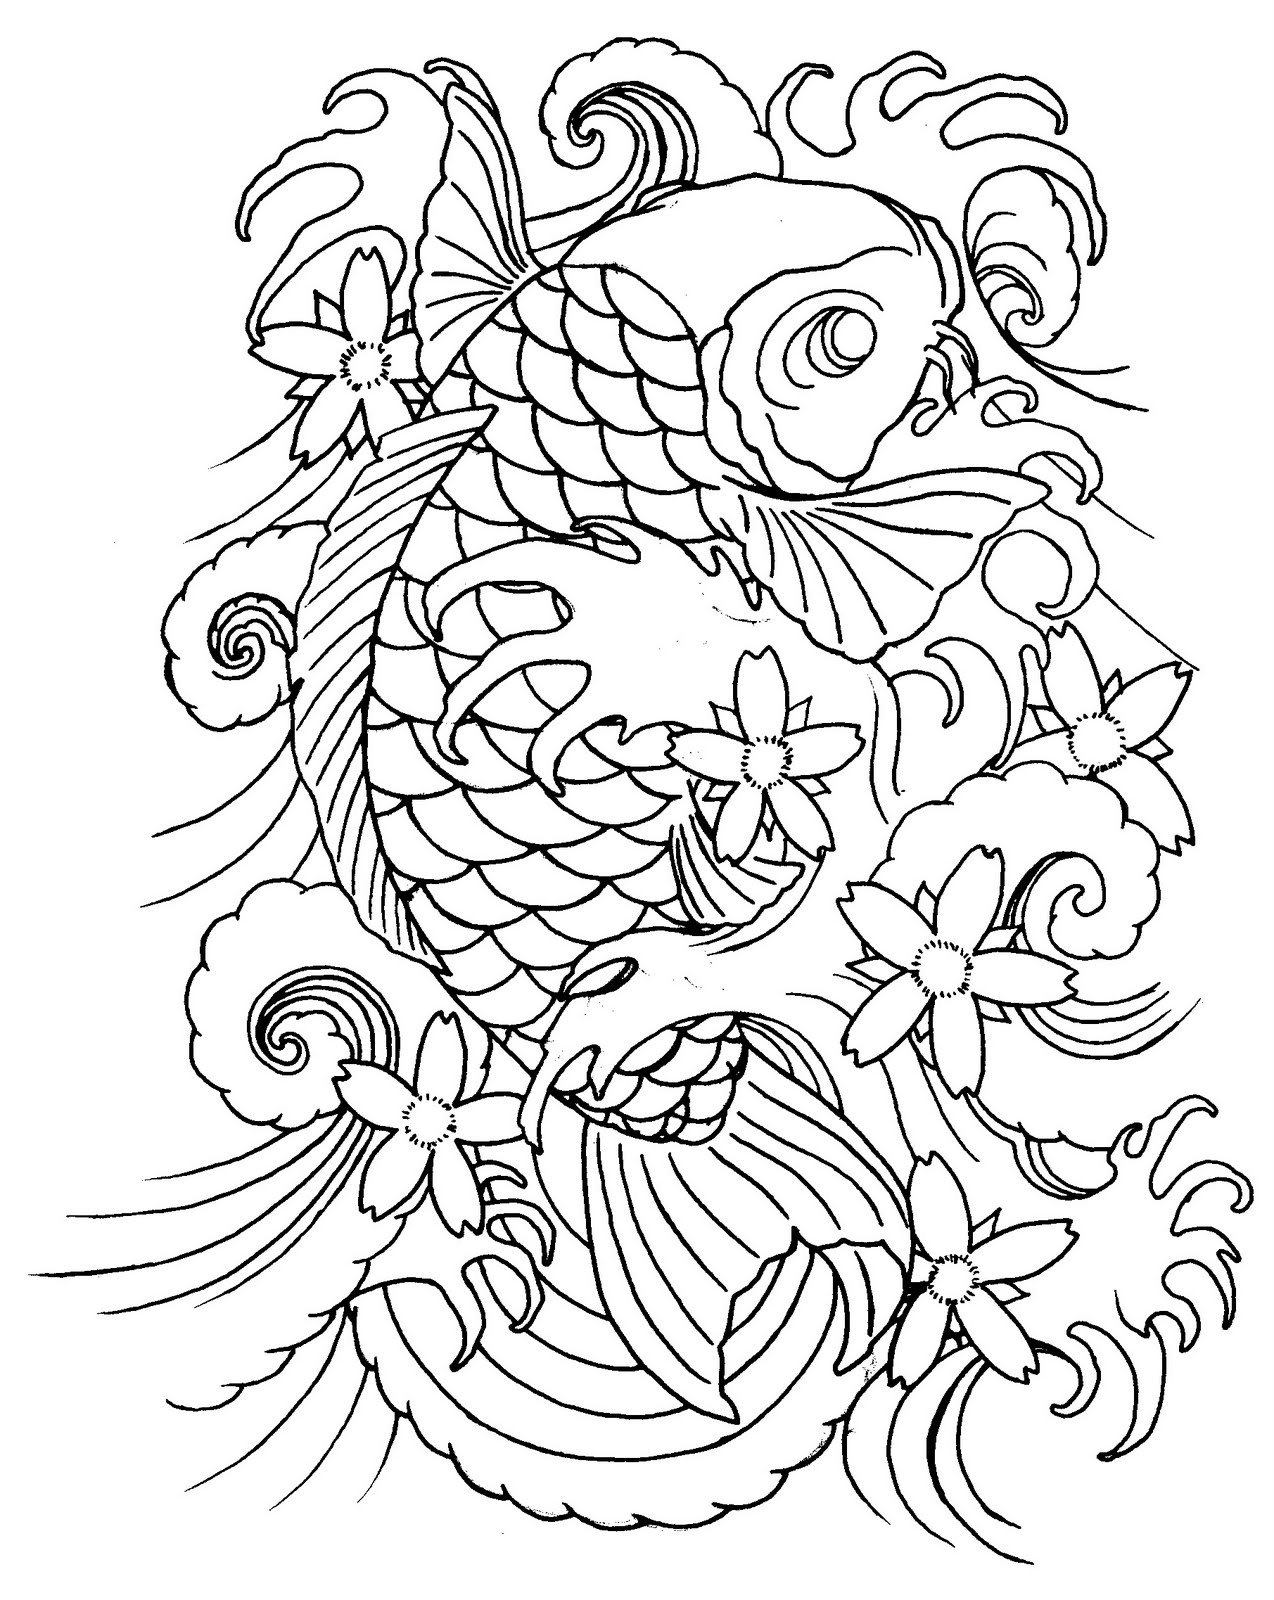 Koi tattoos designs ideas and meaning tattoos for you for Japanese koi fish drawing